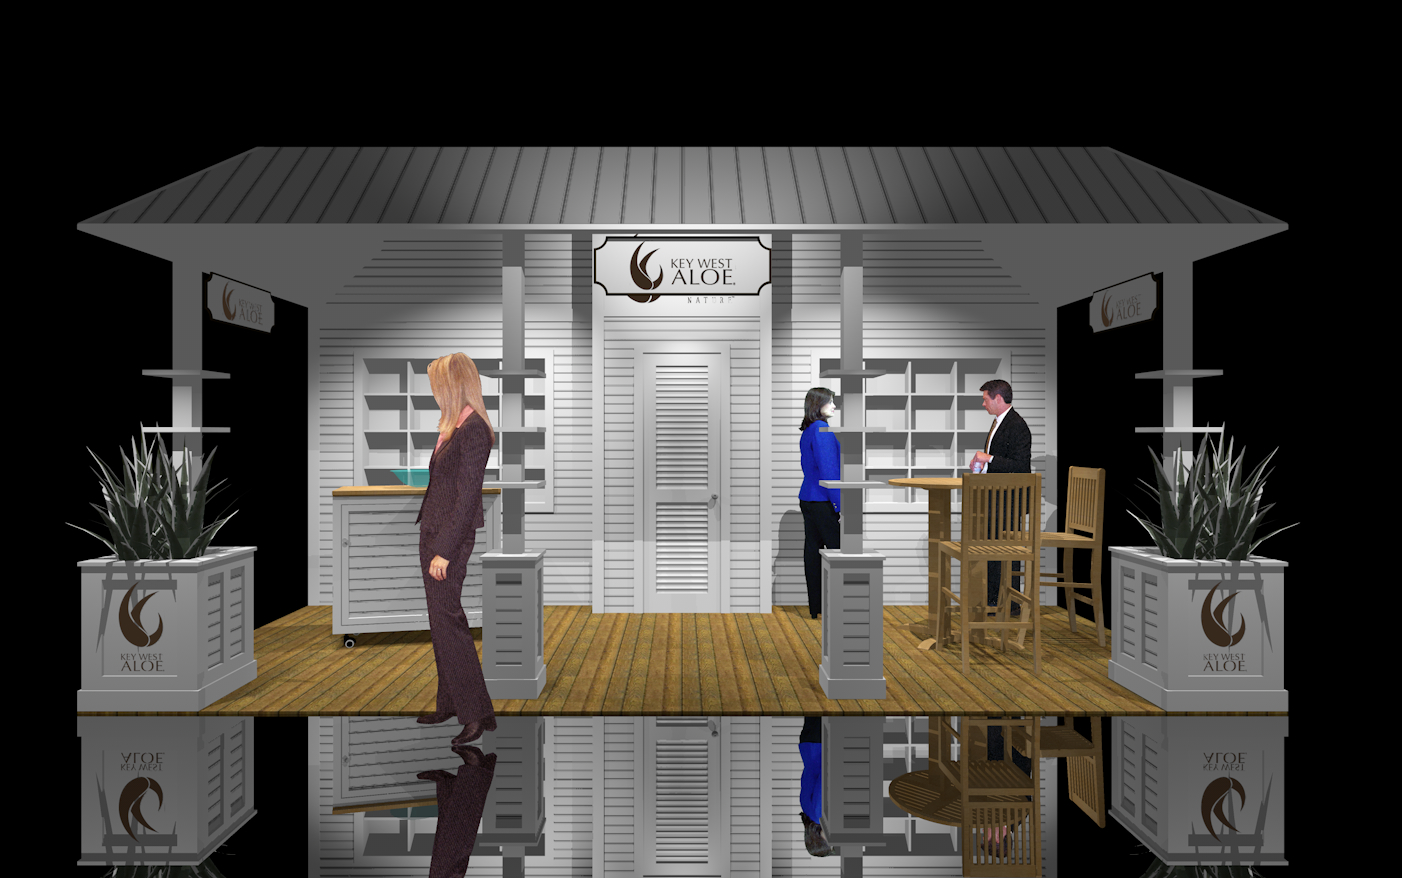 Key West Aloe Trade Show Booth_Rendering.jpg